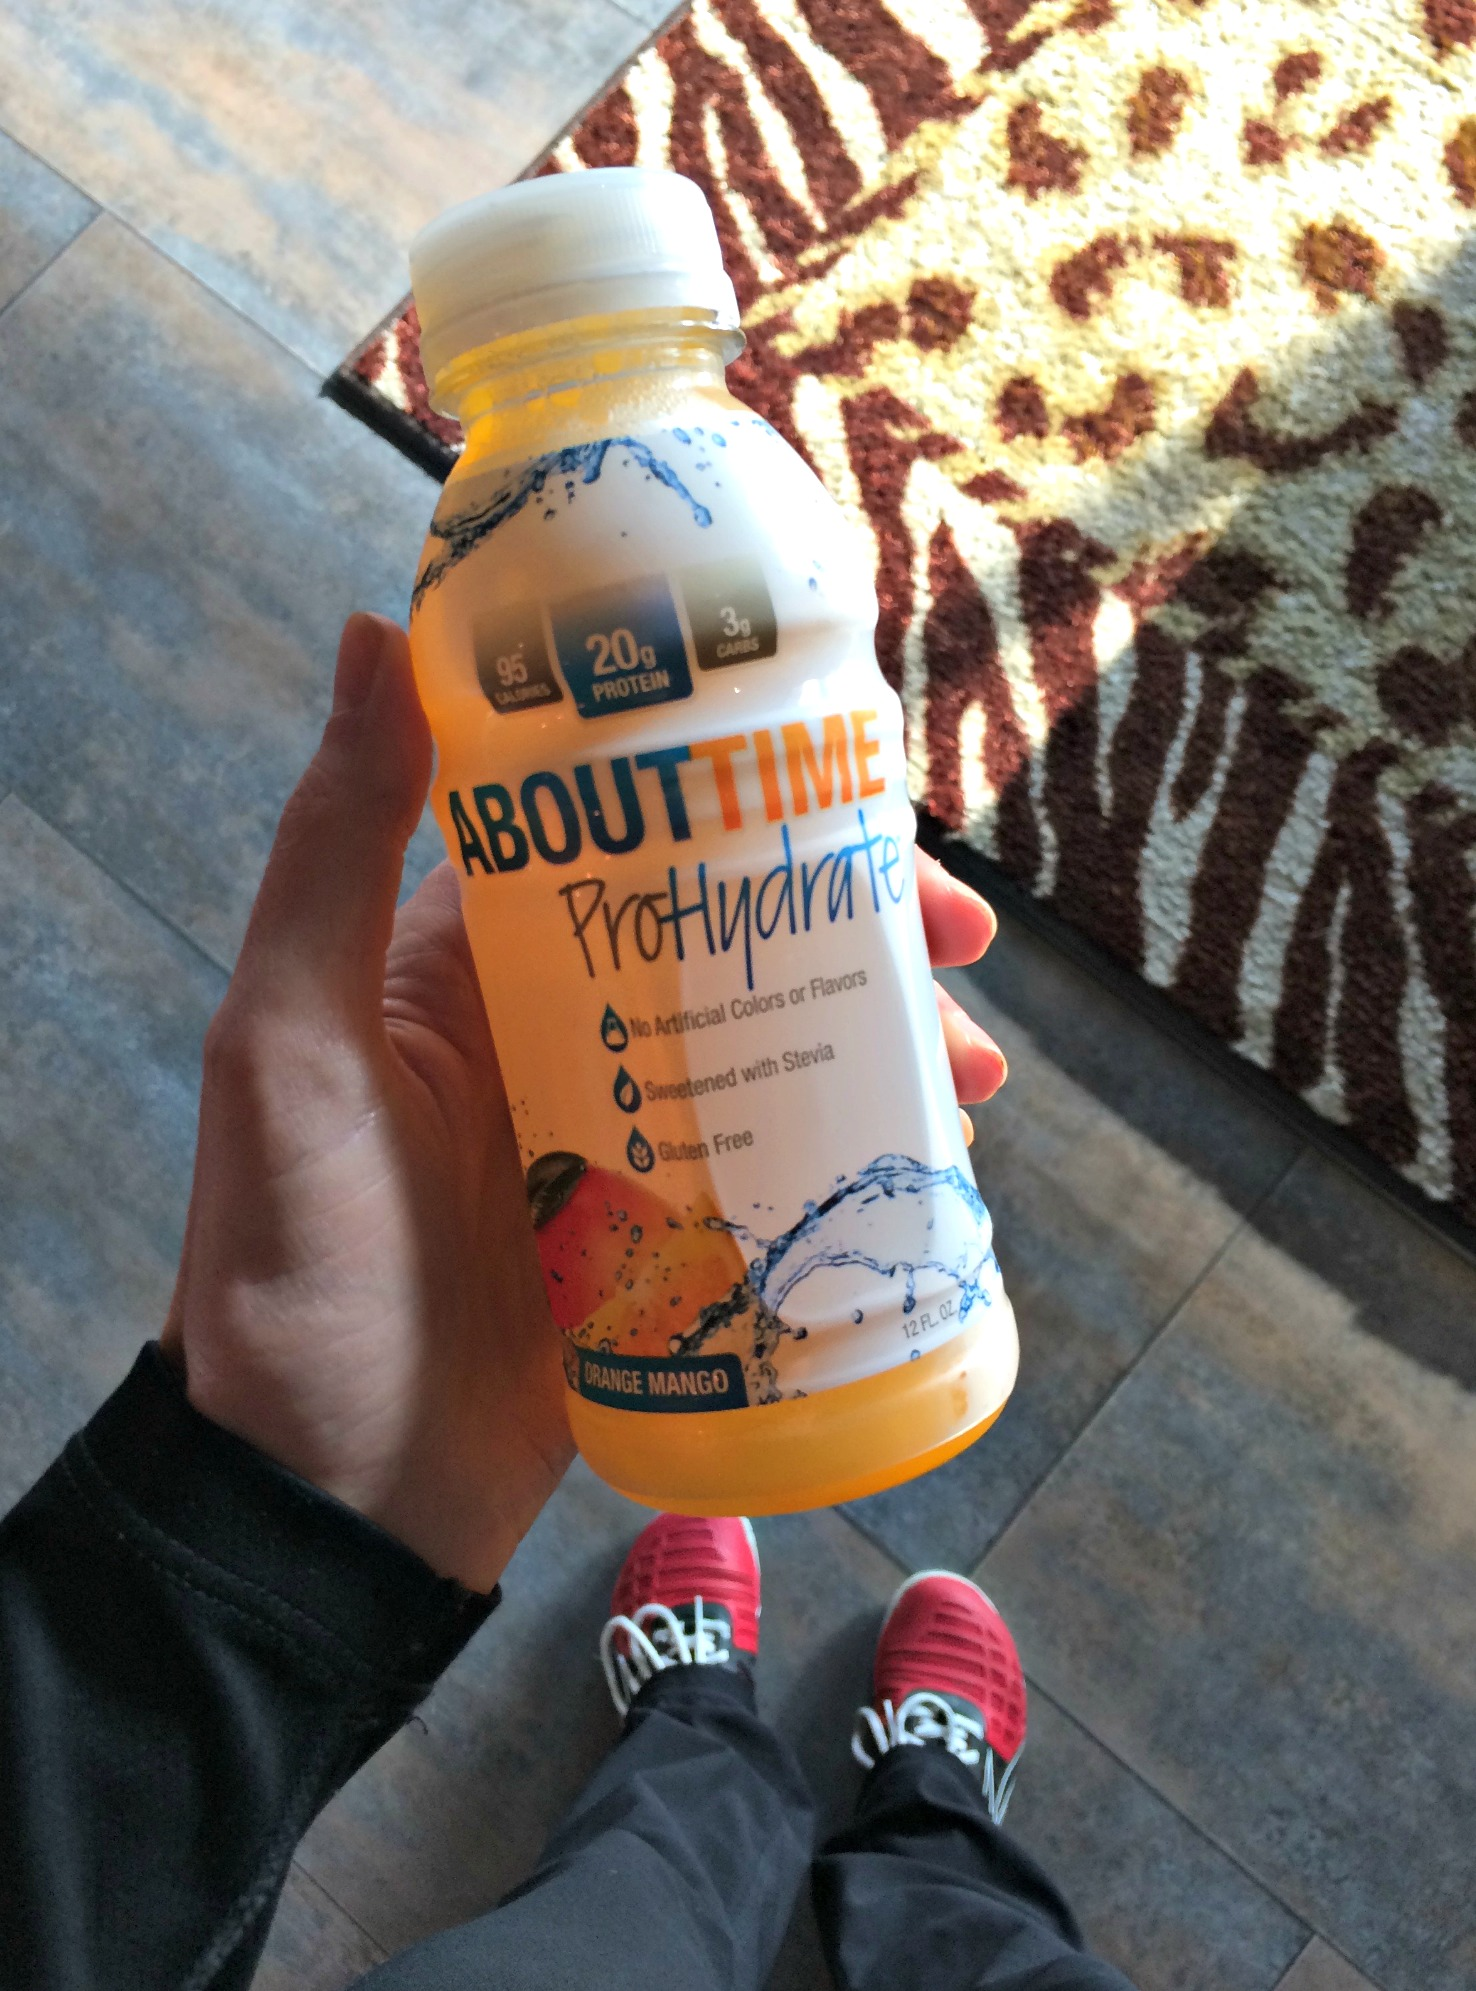 About Time ProHydrate orange mango drink